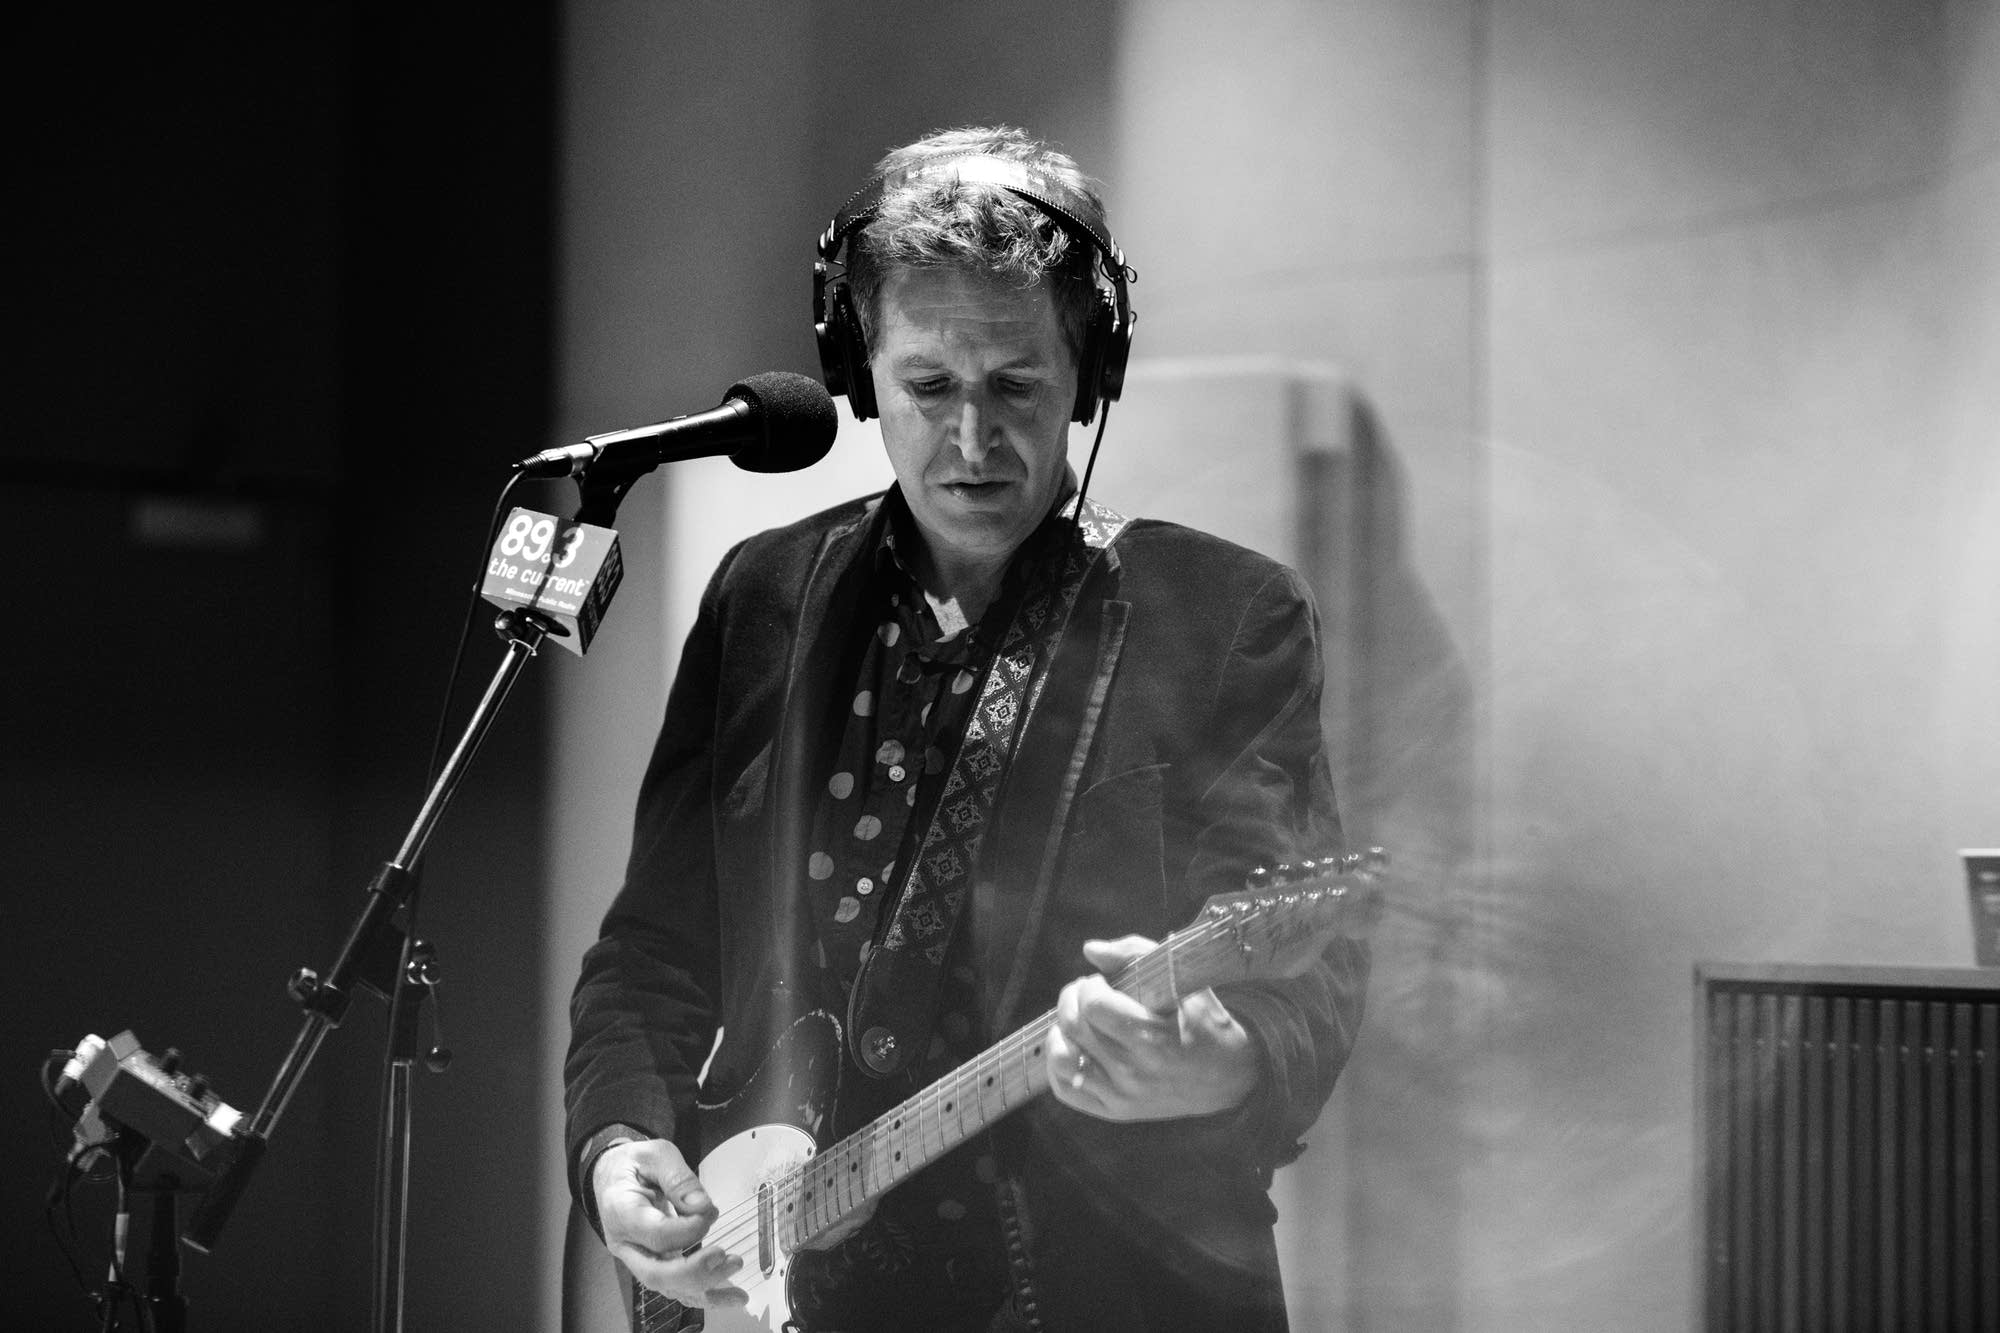 The Dream Syndicate perform in The Current studio